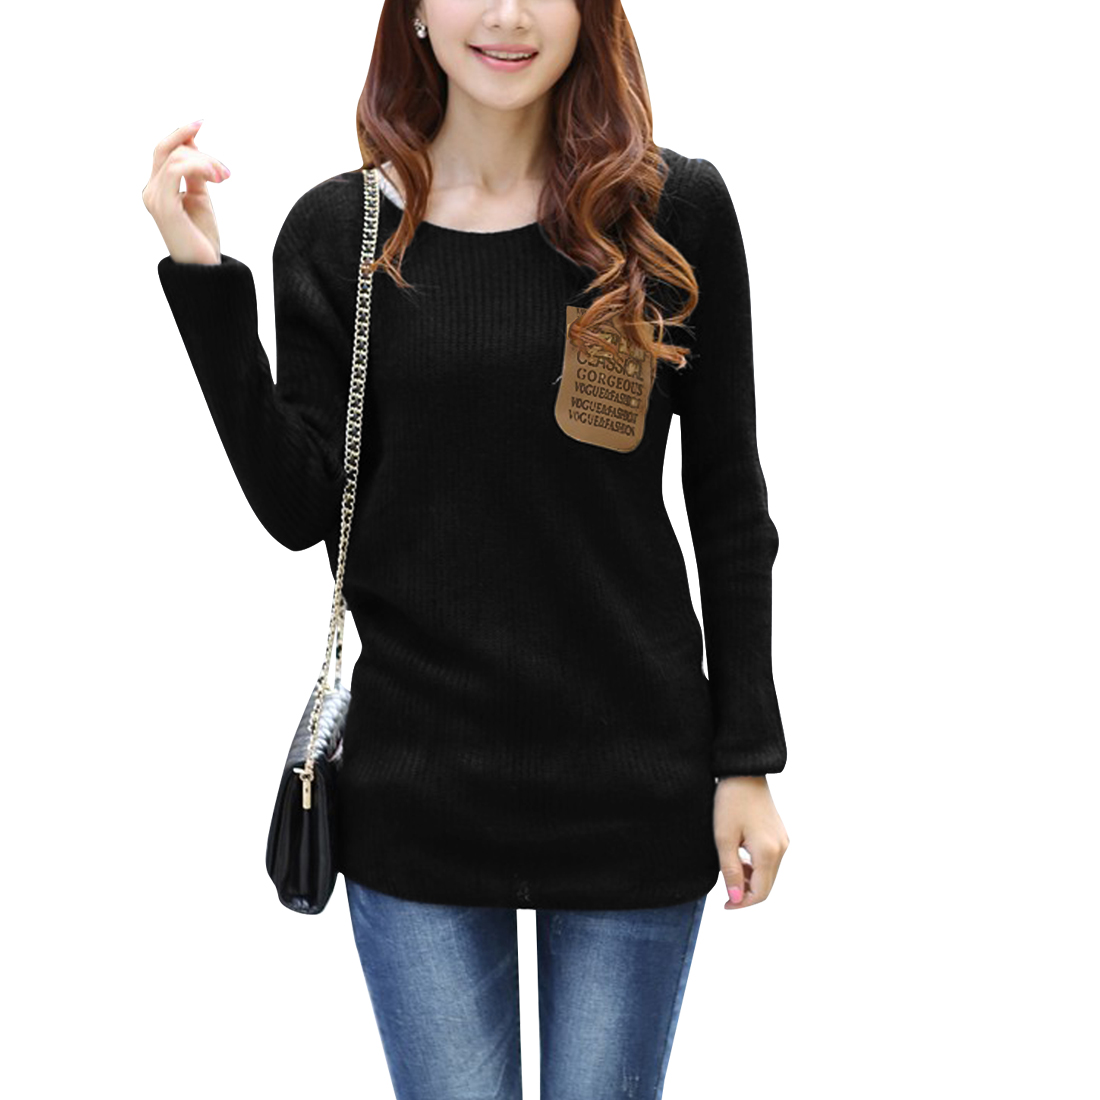 Ladies Letters Printed Faux Leather Patch Pocket Front Black Sweater S